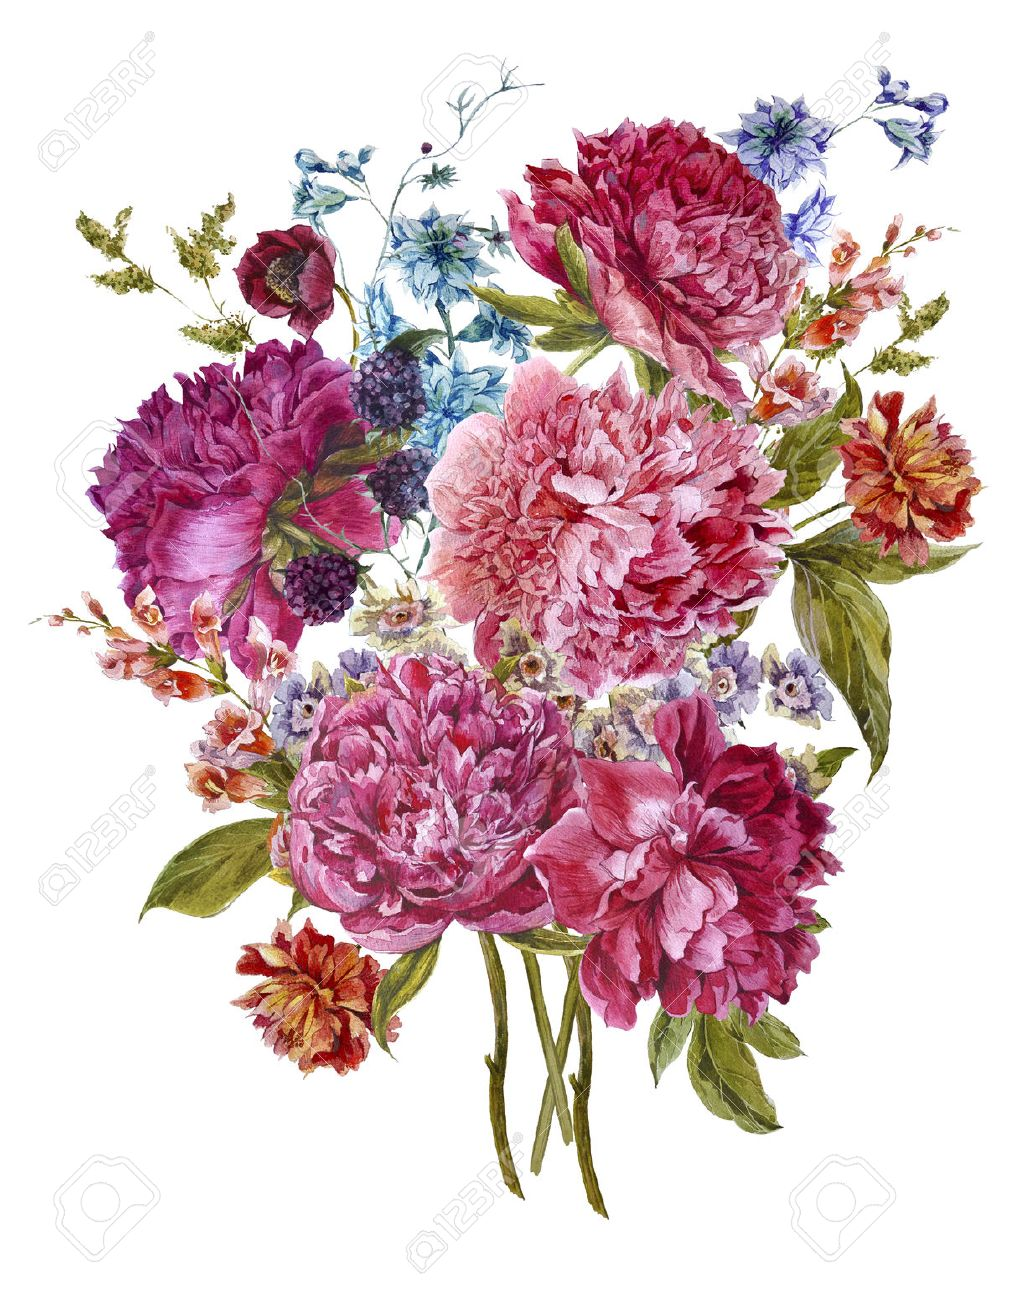 Gentle Summer Floral Bouquet With Burgundy Peonies Hyacinths Stock Photo Picture And Royalty Free Image Image 43627767